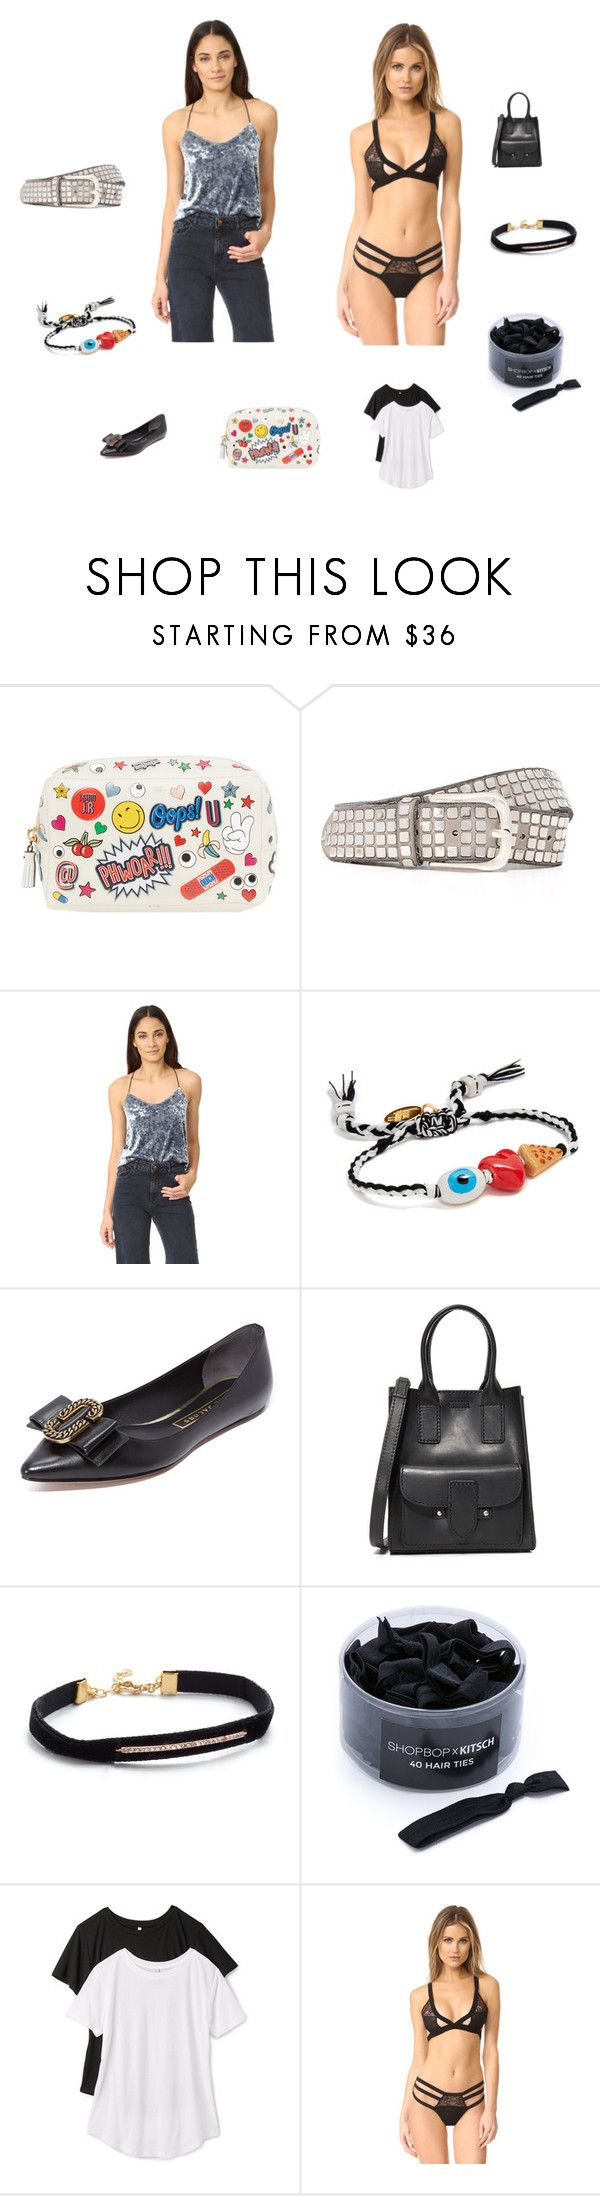 """Your style"" by jamuna-kaalla ❤ liked on Polyvore featuring Anya Hindmarch, B. Belt, Only Hearts, Venessa Arizaga, Marc Jacobs, Frye, Shashi, Kitsch, Z Supply and Honeydew Intimates"